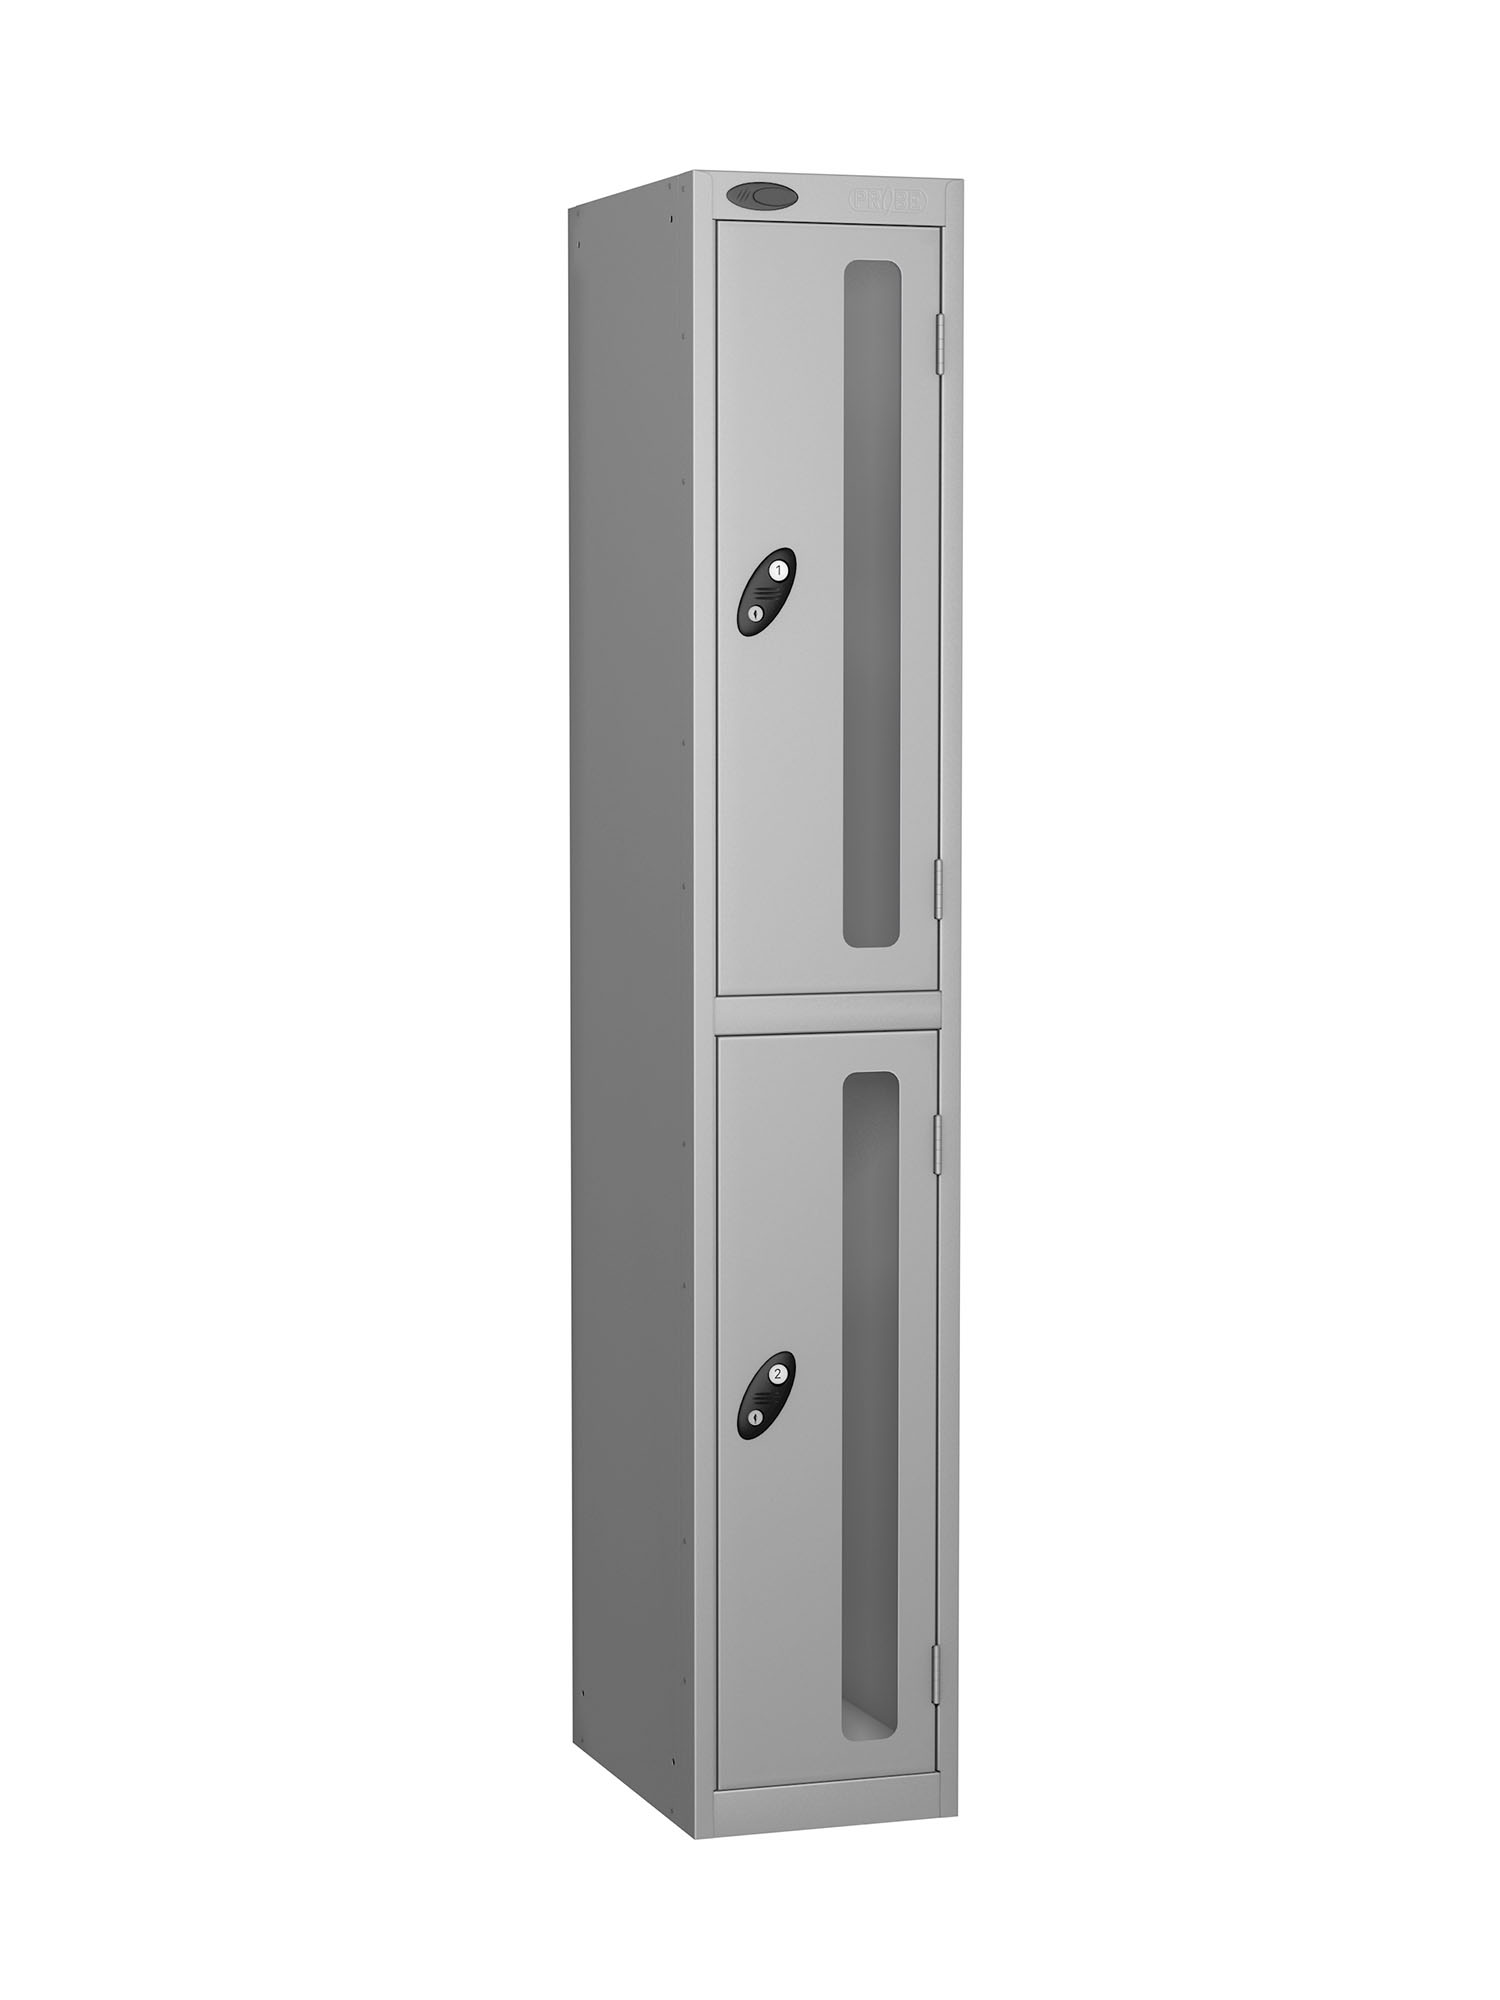 Probe 2 doors vision panel anti-stock theft locker silver